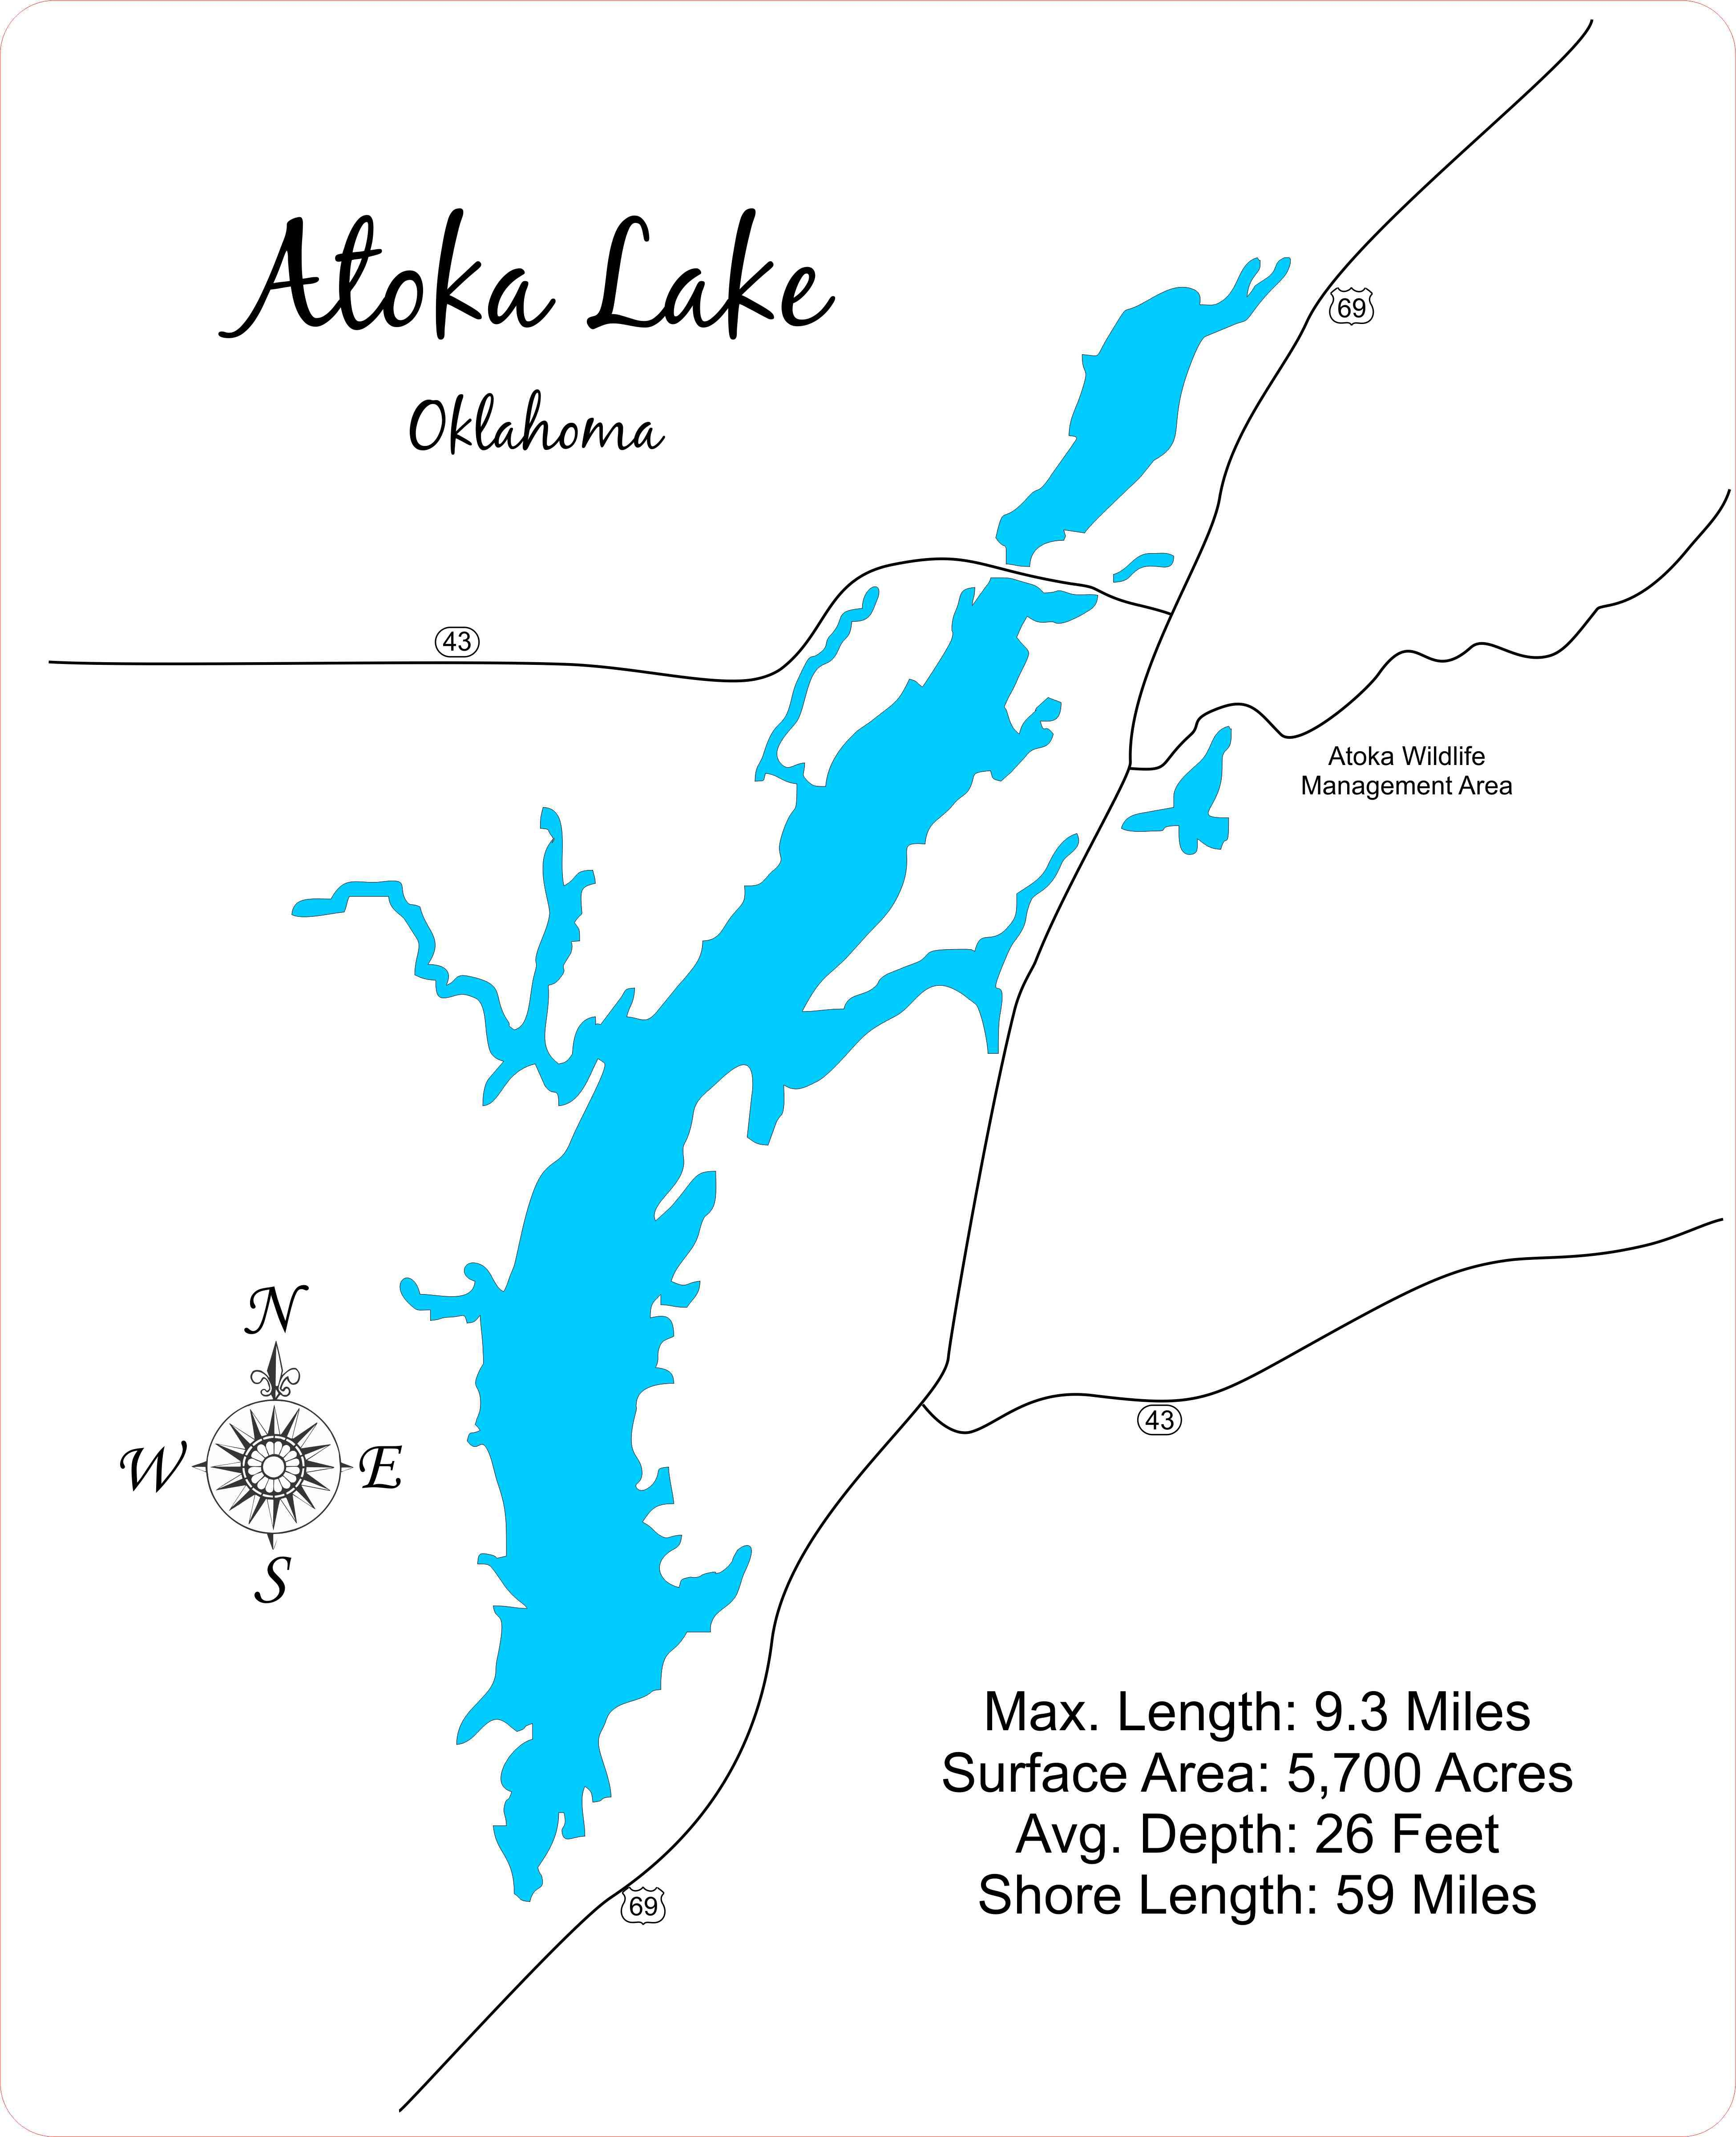 8b9f86e8dd9 ... and precision cut topographical Map of Atoka Lake in Atoka County,  Oklahoma with the following interesting stats carved into it: Max. Length:  9.3 Miles ...